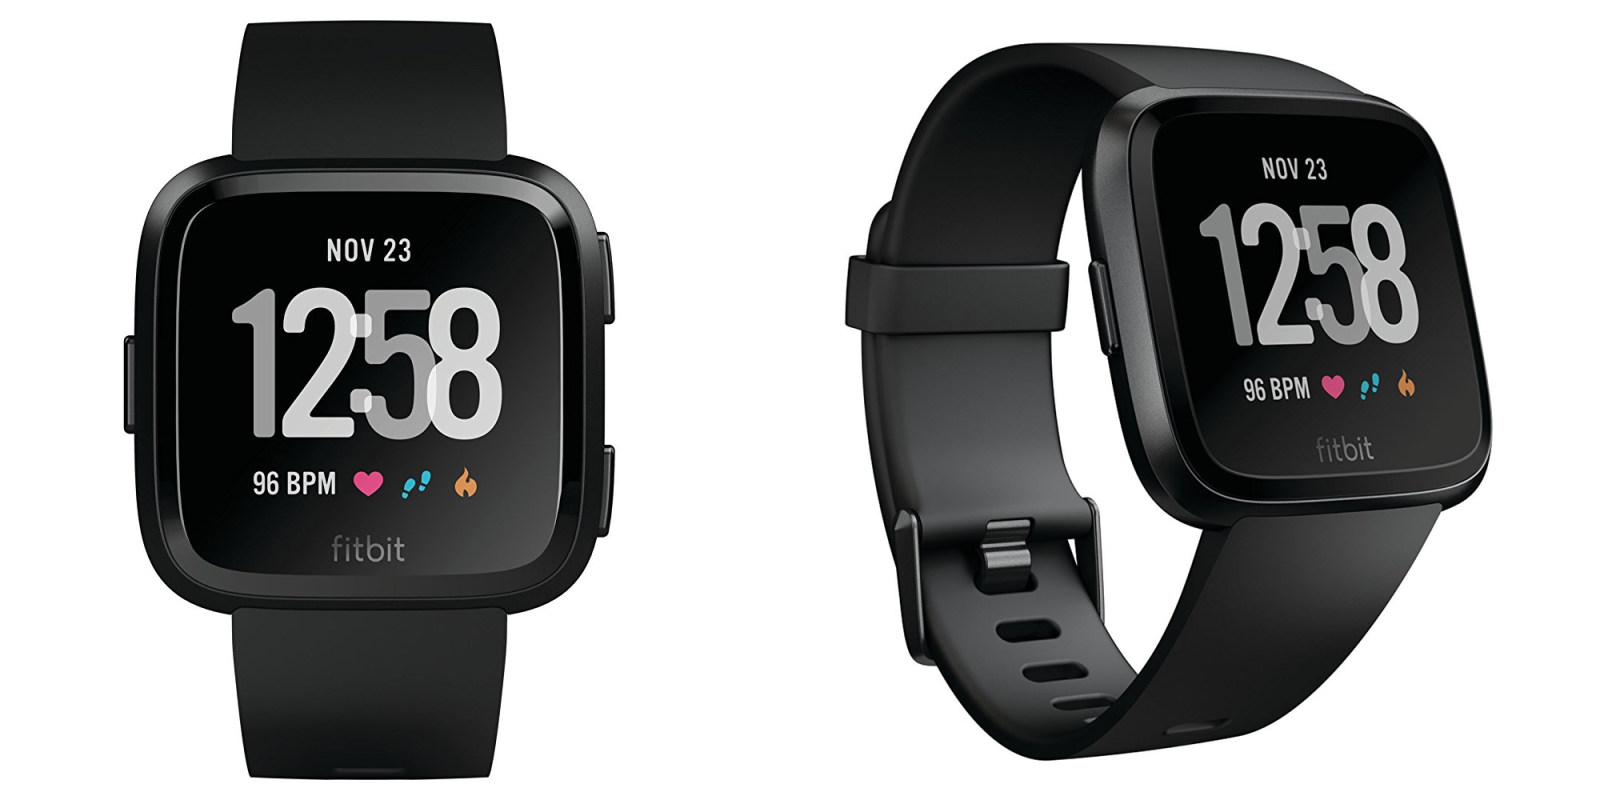 Fitbit Versa drops 25% to Amazon all-time low ahead of Thanksgiving dinner, now $150